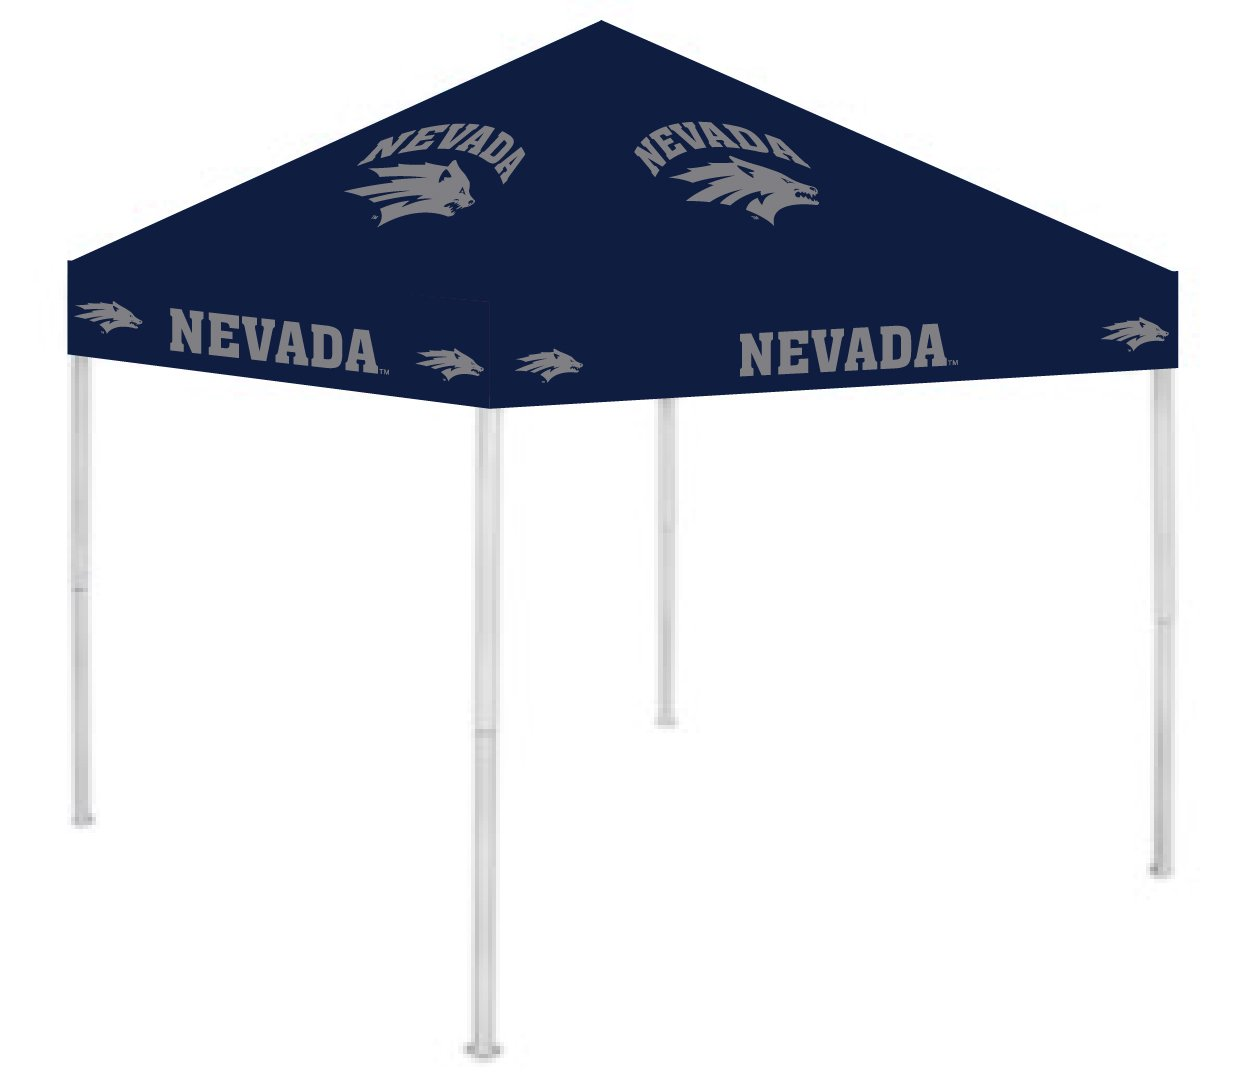 Rivalry RV290-5000 9' x 9' Ultimate Tailgate Pop-Up Gazebo Canopy Tent B004NWEGGK 9 x 9|Nevada Wolf Pack Nevada Wolf Pack 9 x 9